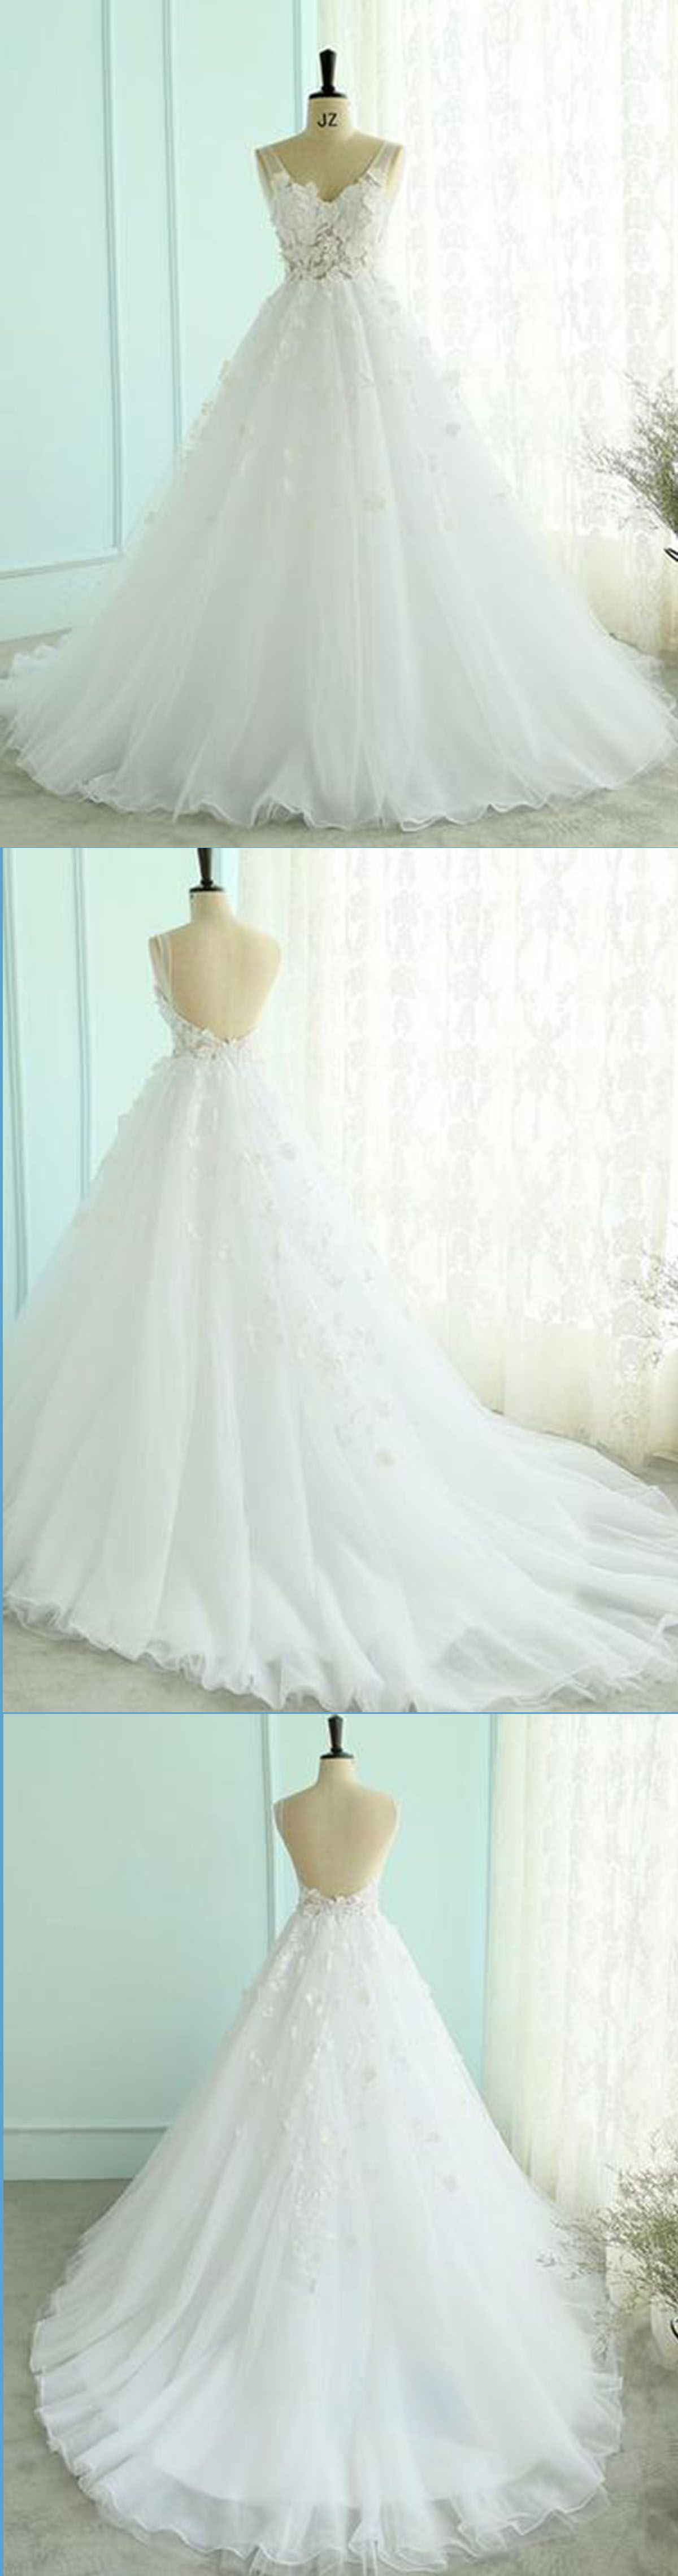 New wedding dress   New Wedding Dresss  Elegant white lace tulle long prom gown